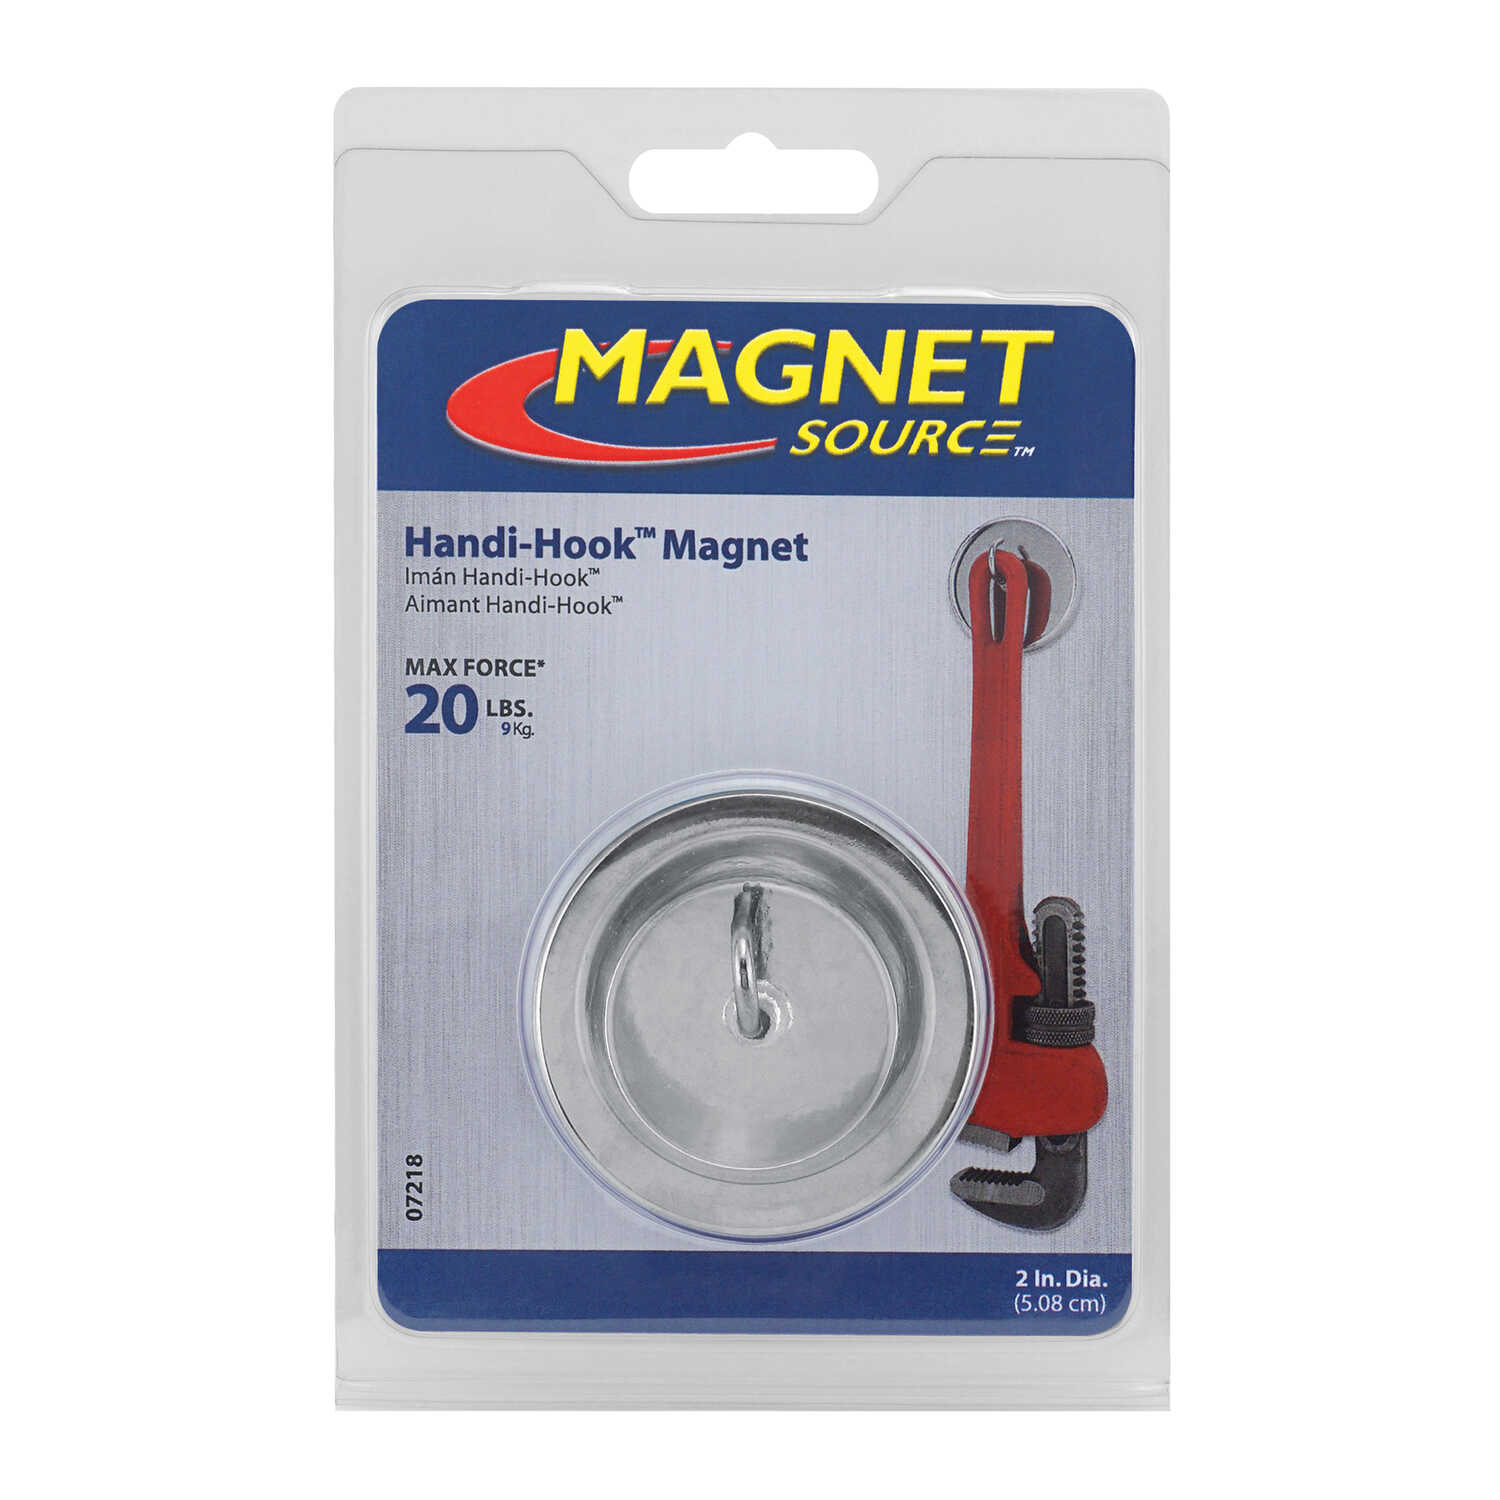 Master Magnetics  Handi-Hook  1.25 in. Ceramic  Magnetic Hook  20 lb. pull 3.4 MGOe Silver  1 pc.